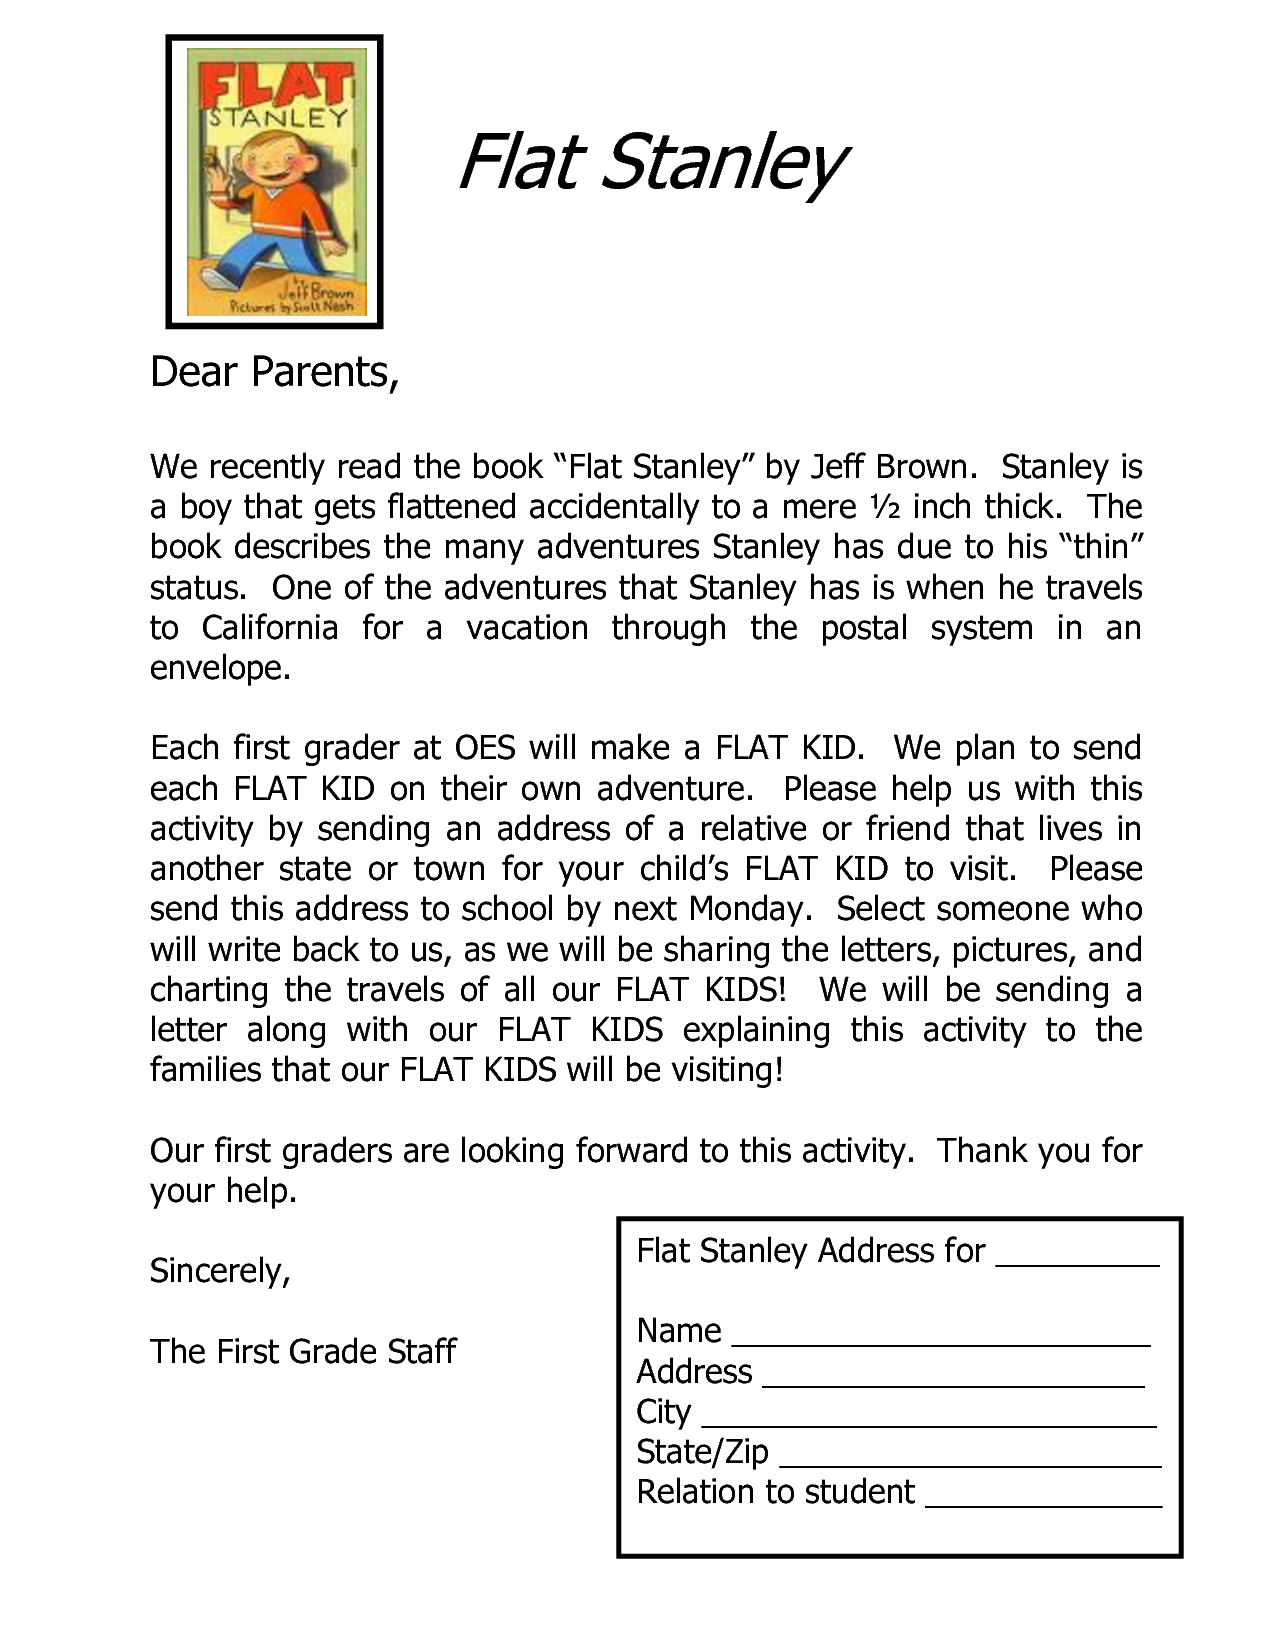 Flat Stanley Letter Template - Flat Stanley Letter Template Classroom